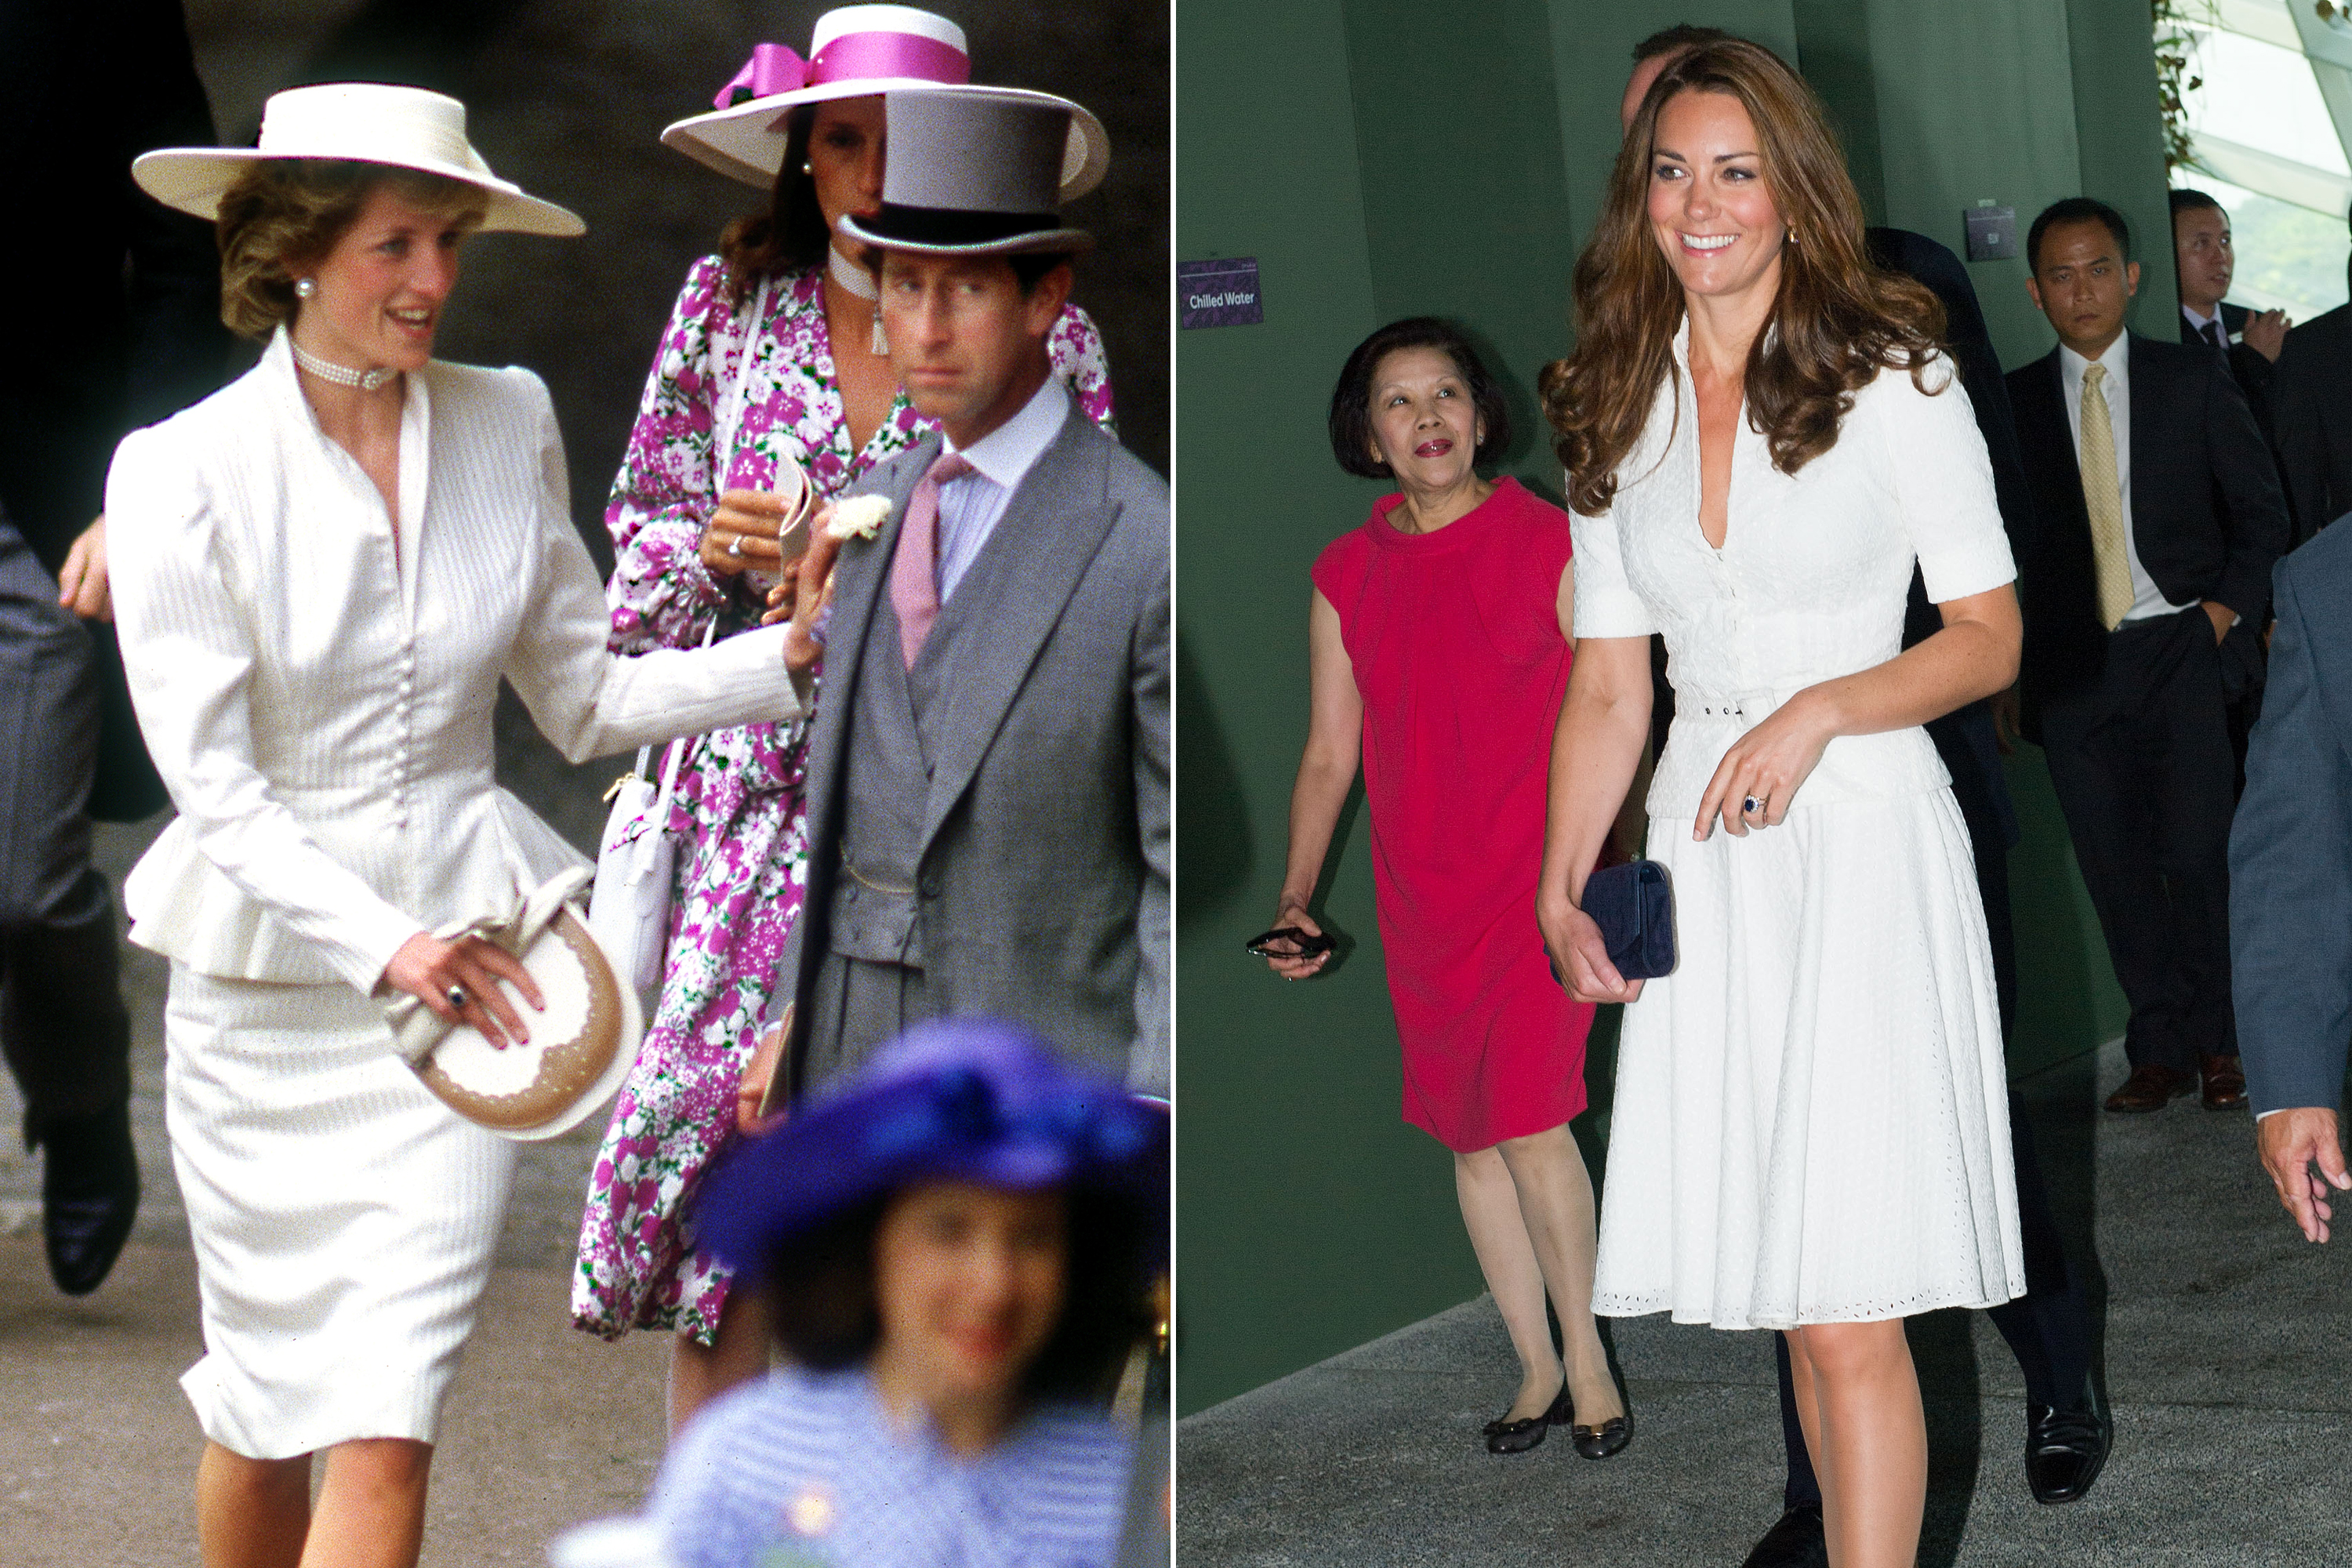 Crisp white skirt suits with nipped-in waists proved to be royally striking for both Diana and Kate.